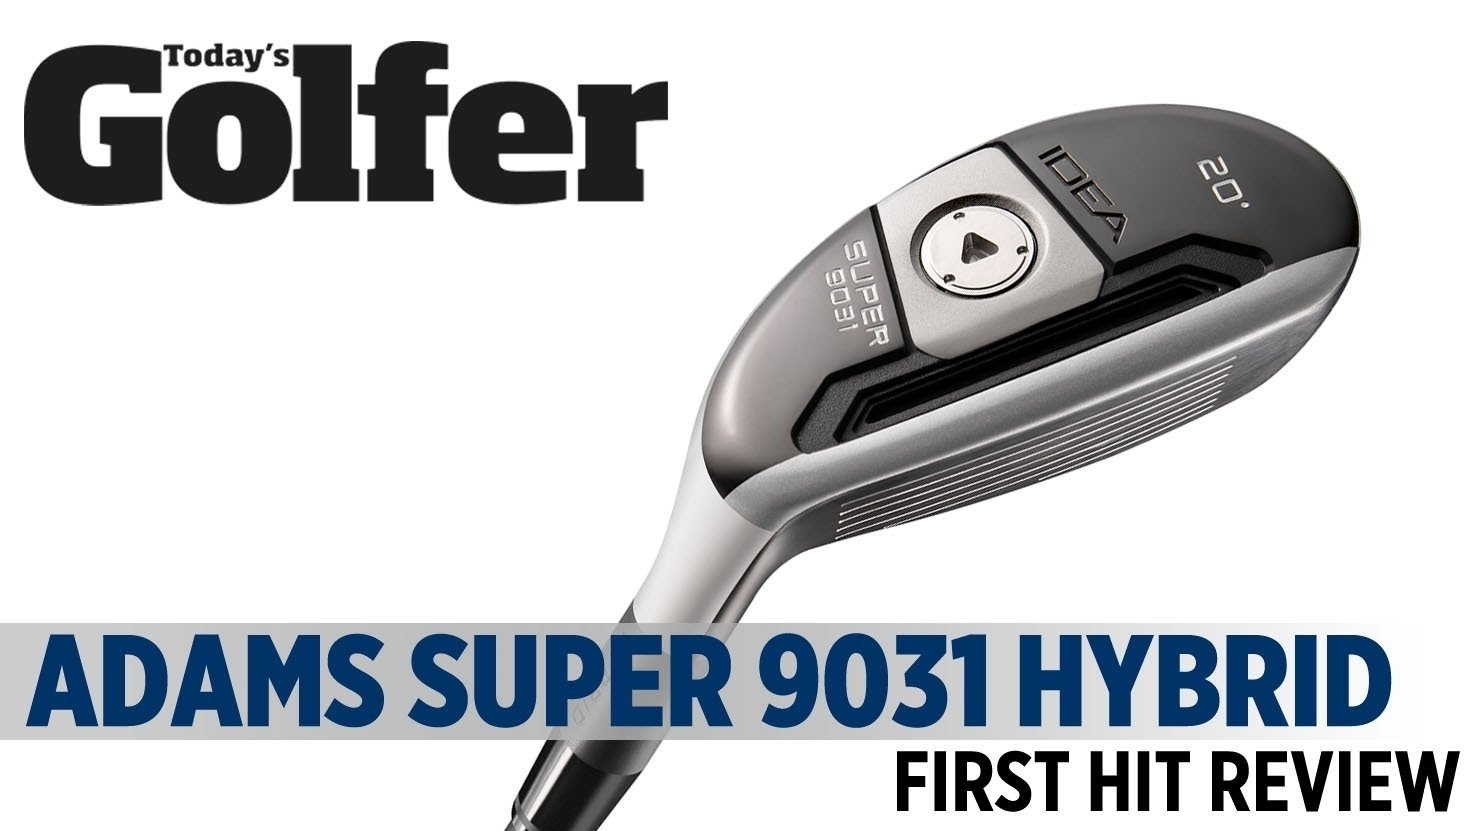 adams golf idea super 9031 hybrid - first hit review - today's